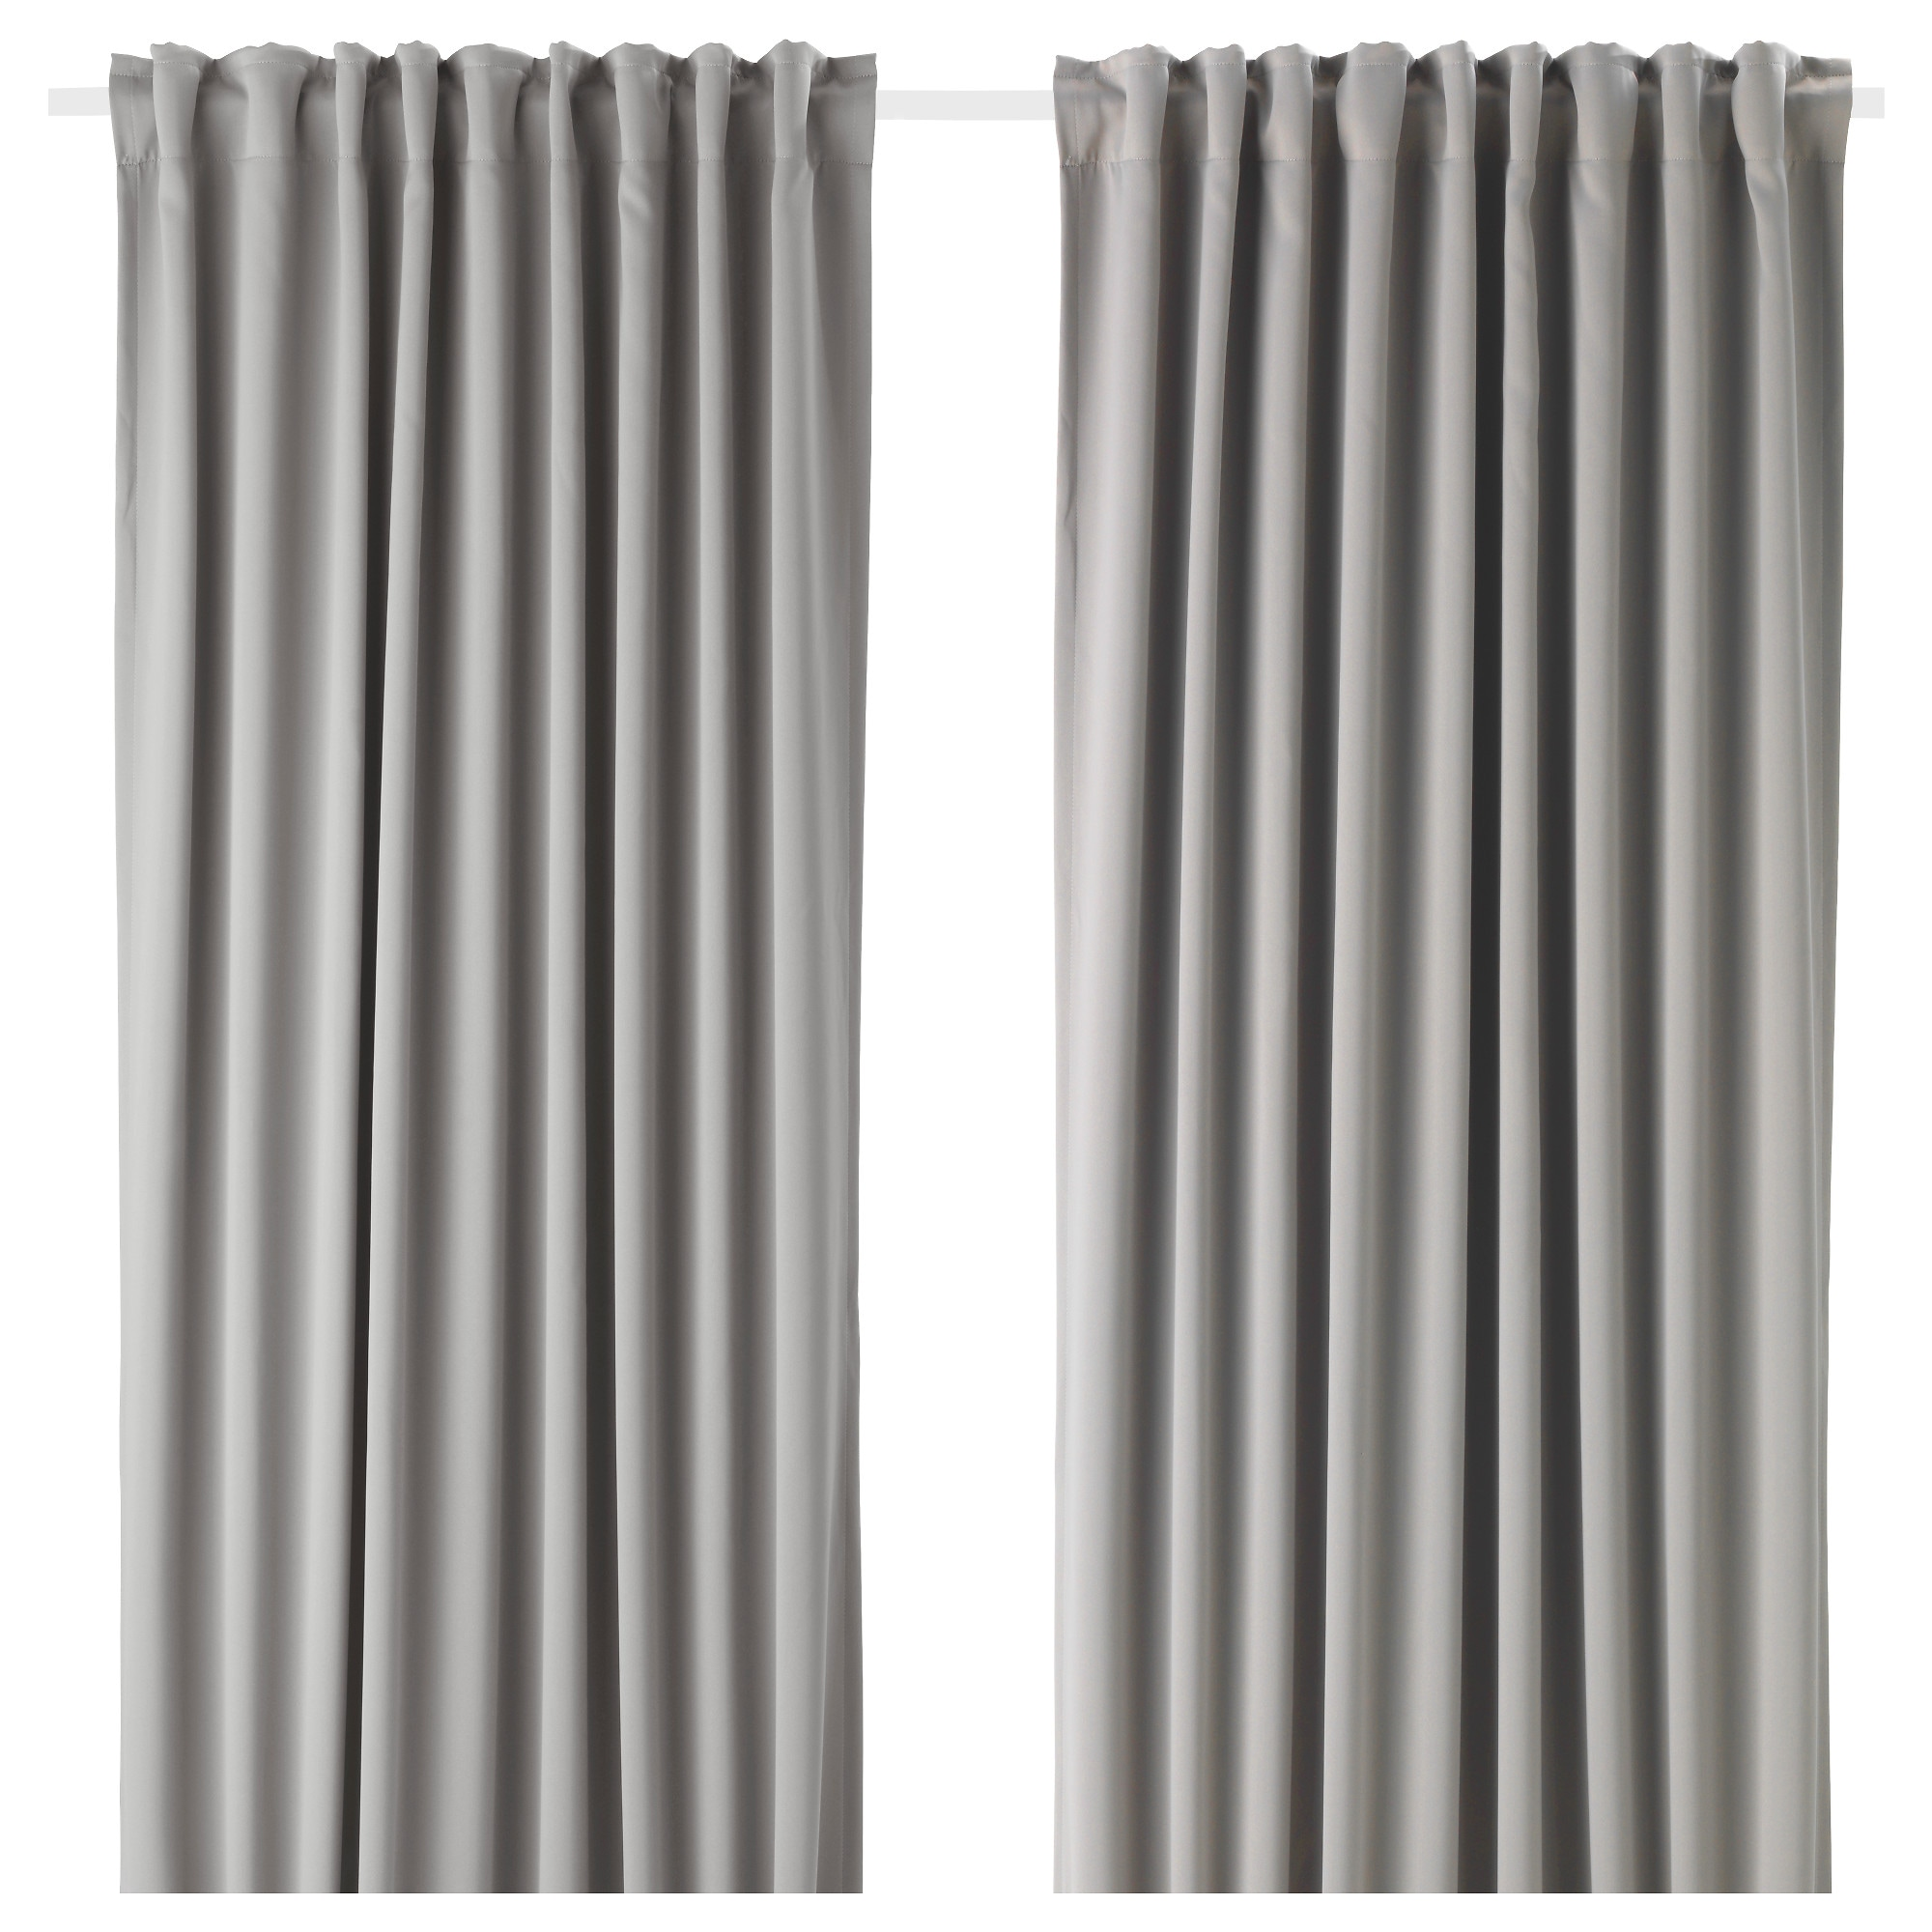 Bunk bed curtains ikea the curtains are four lenda - Majgull Block Out Curtains 1 Pair Grey Length 300 Cm Width